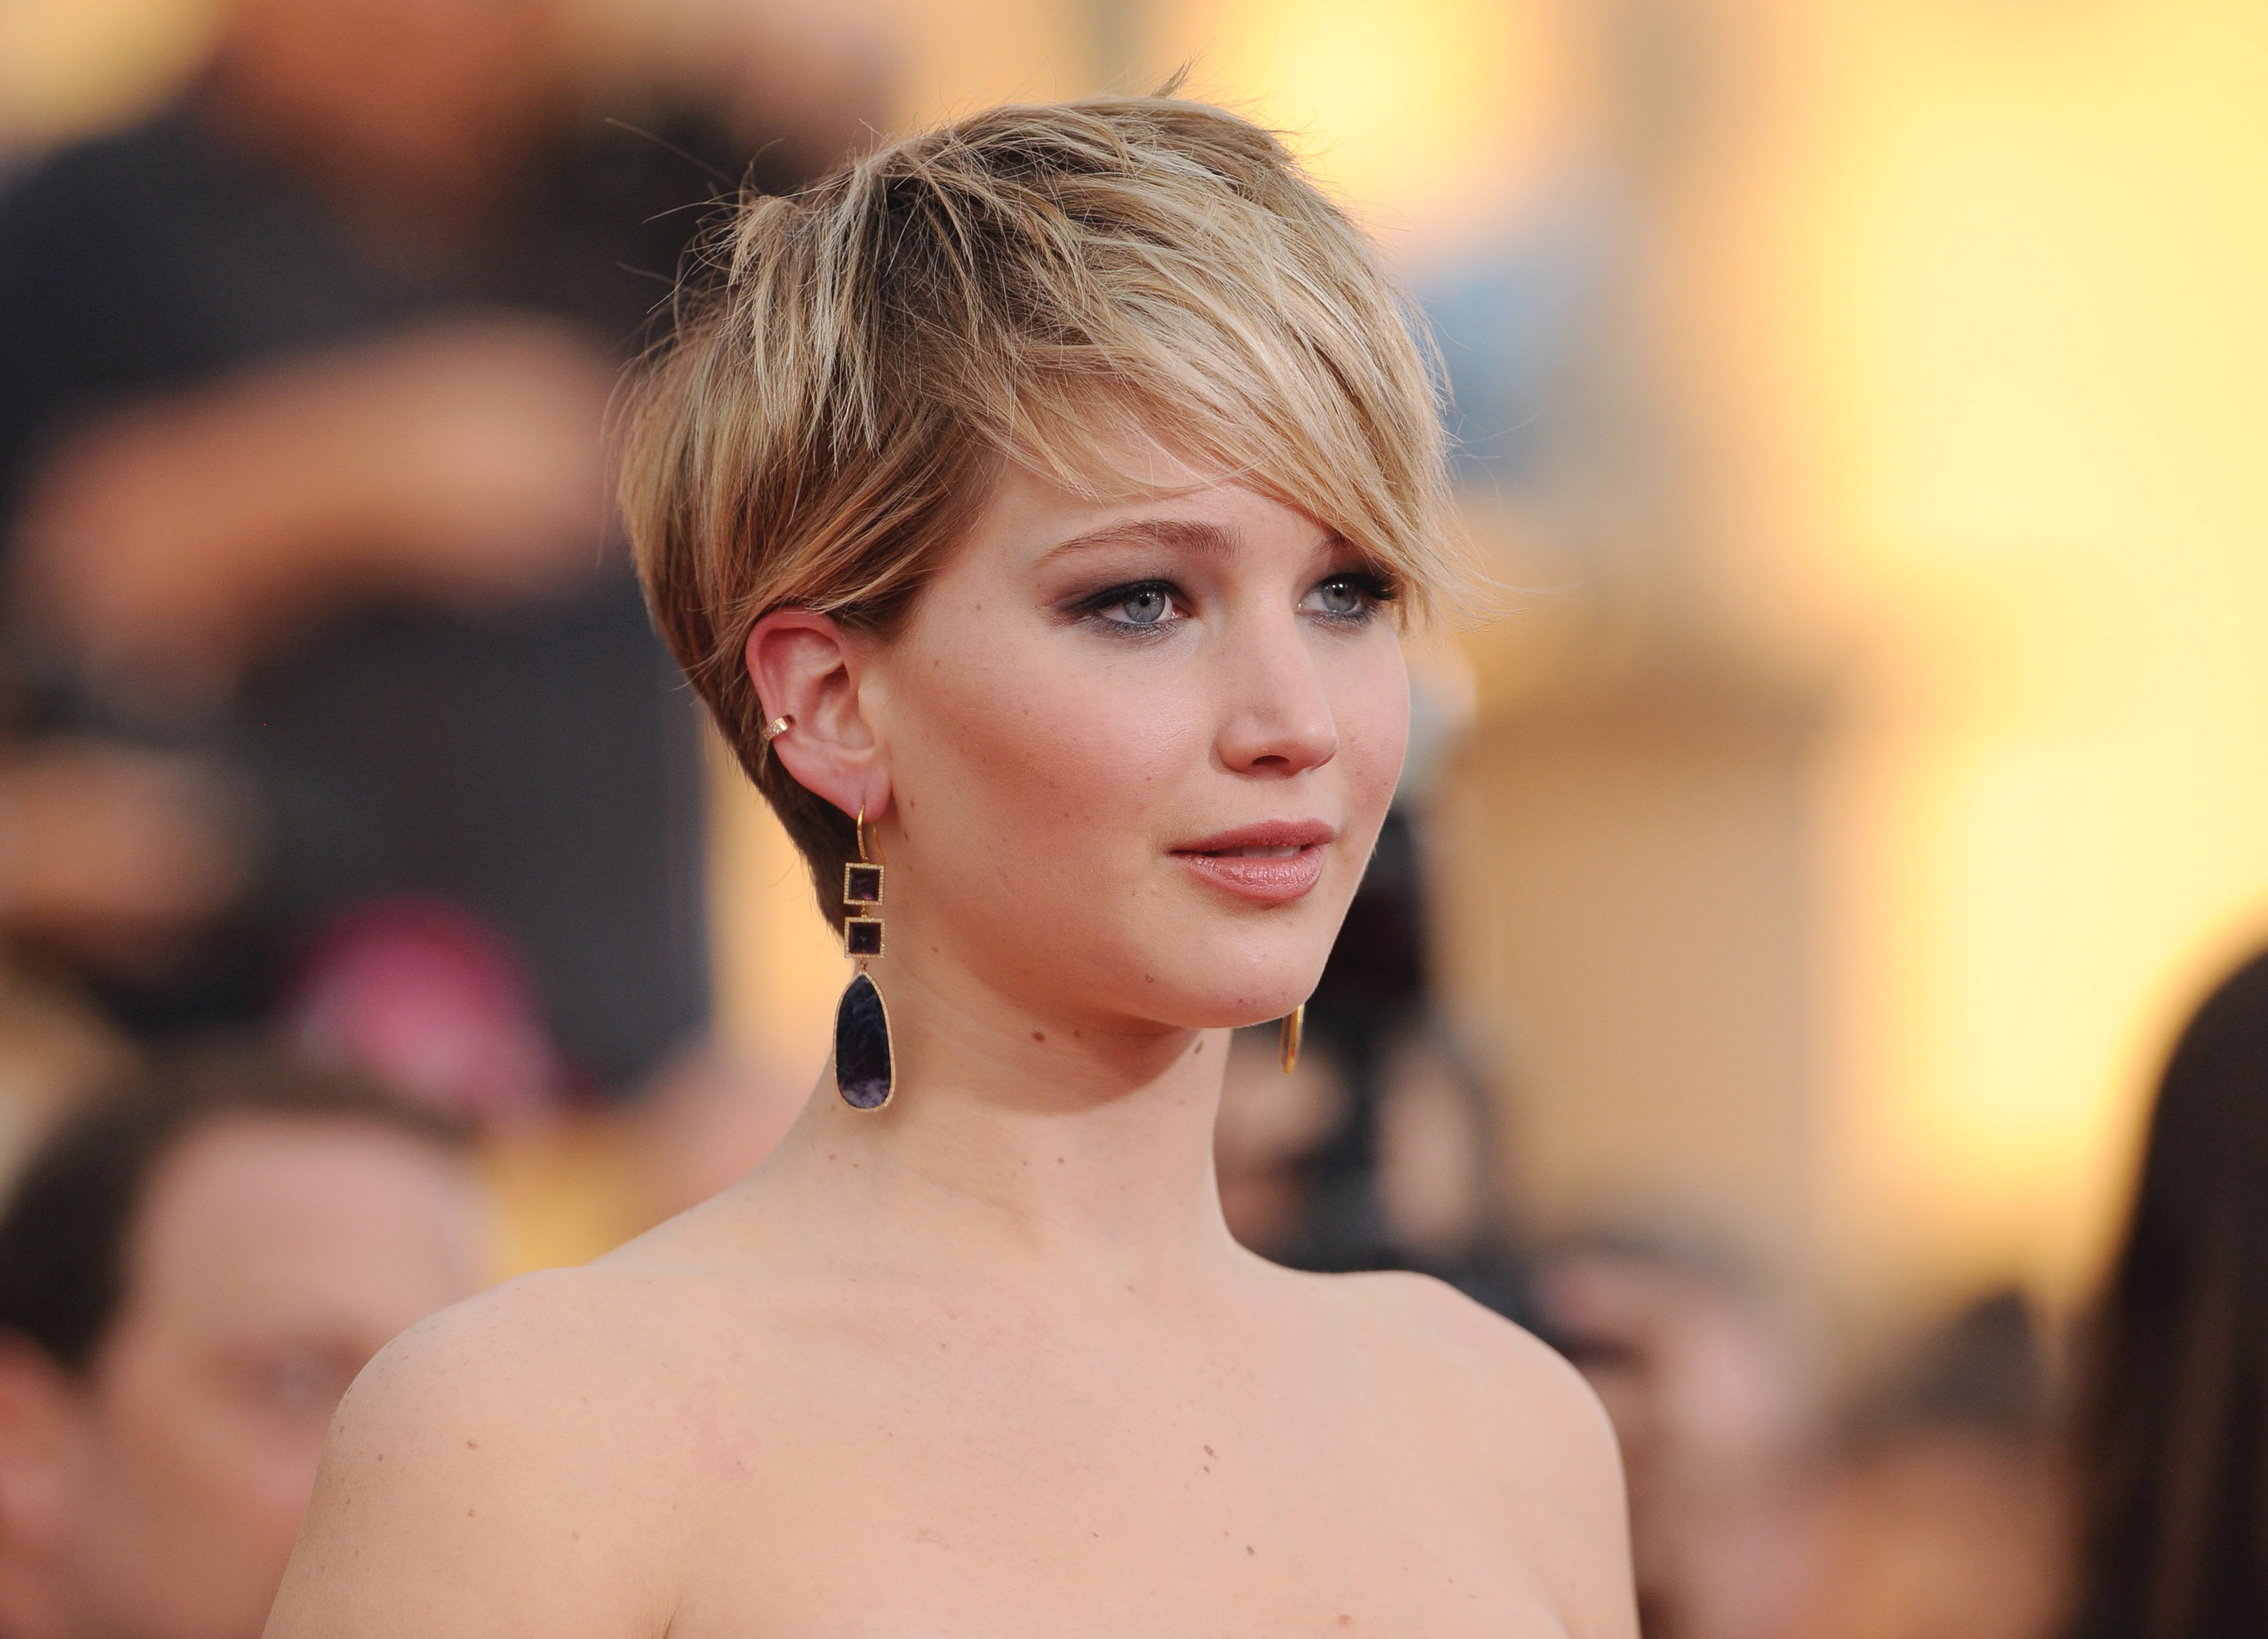 35 Fabulous Short Haircuts For Thick Hair In Short Haircuts Bobs Thick Hair (View 14 of 25)